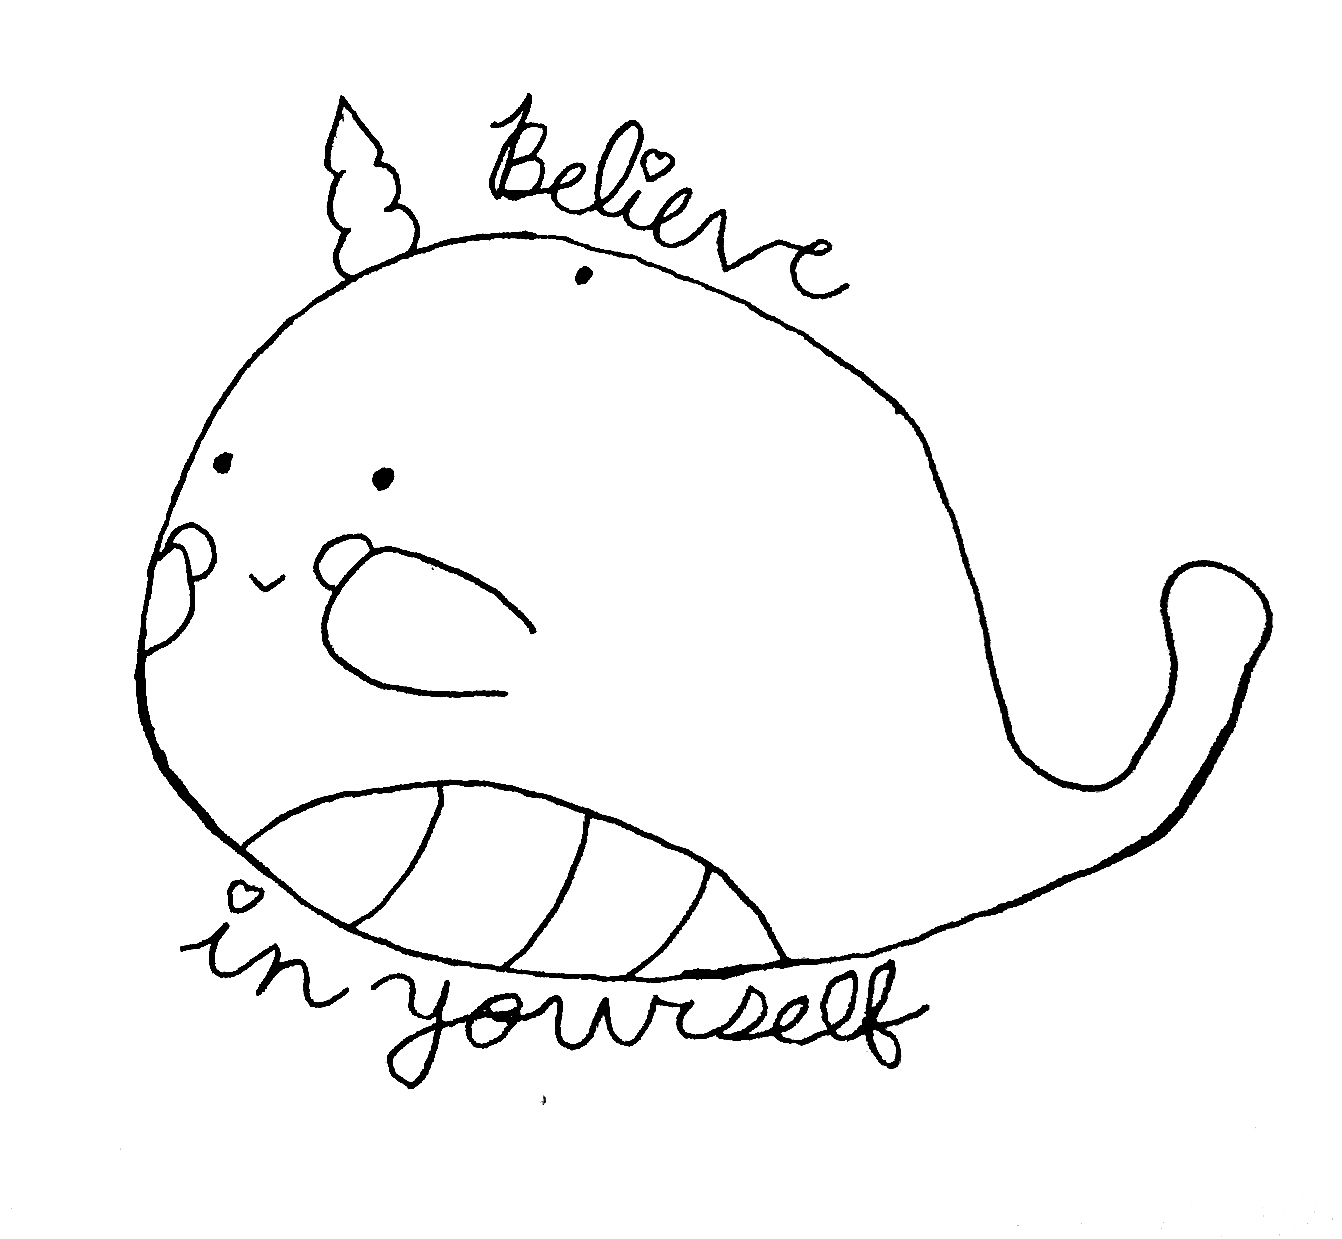 Believe in yourself narwhal coloring page